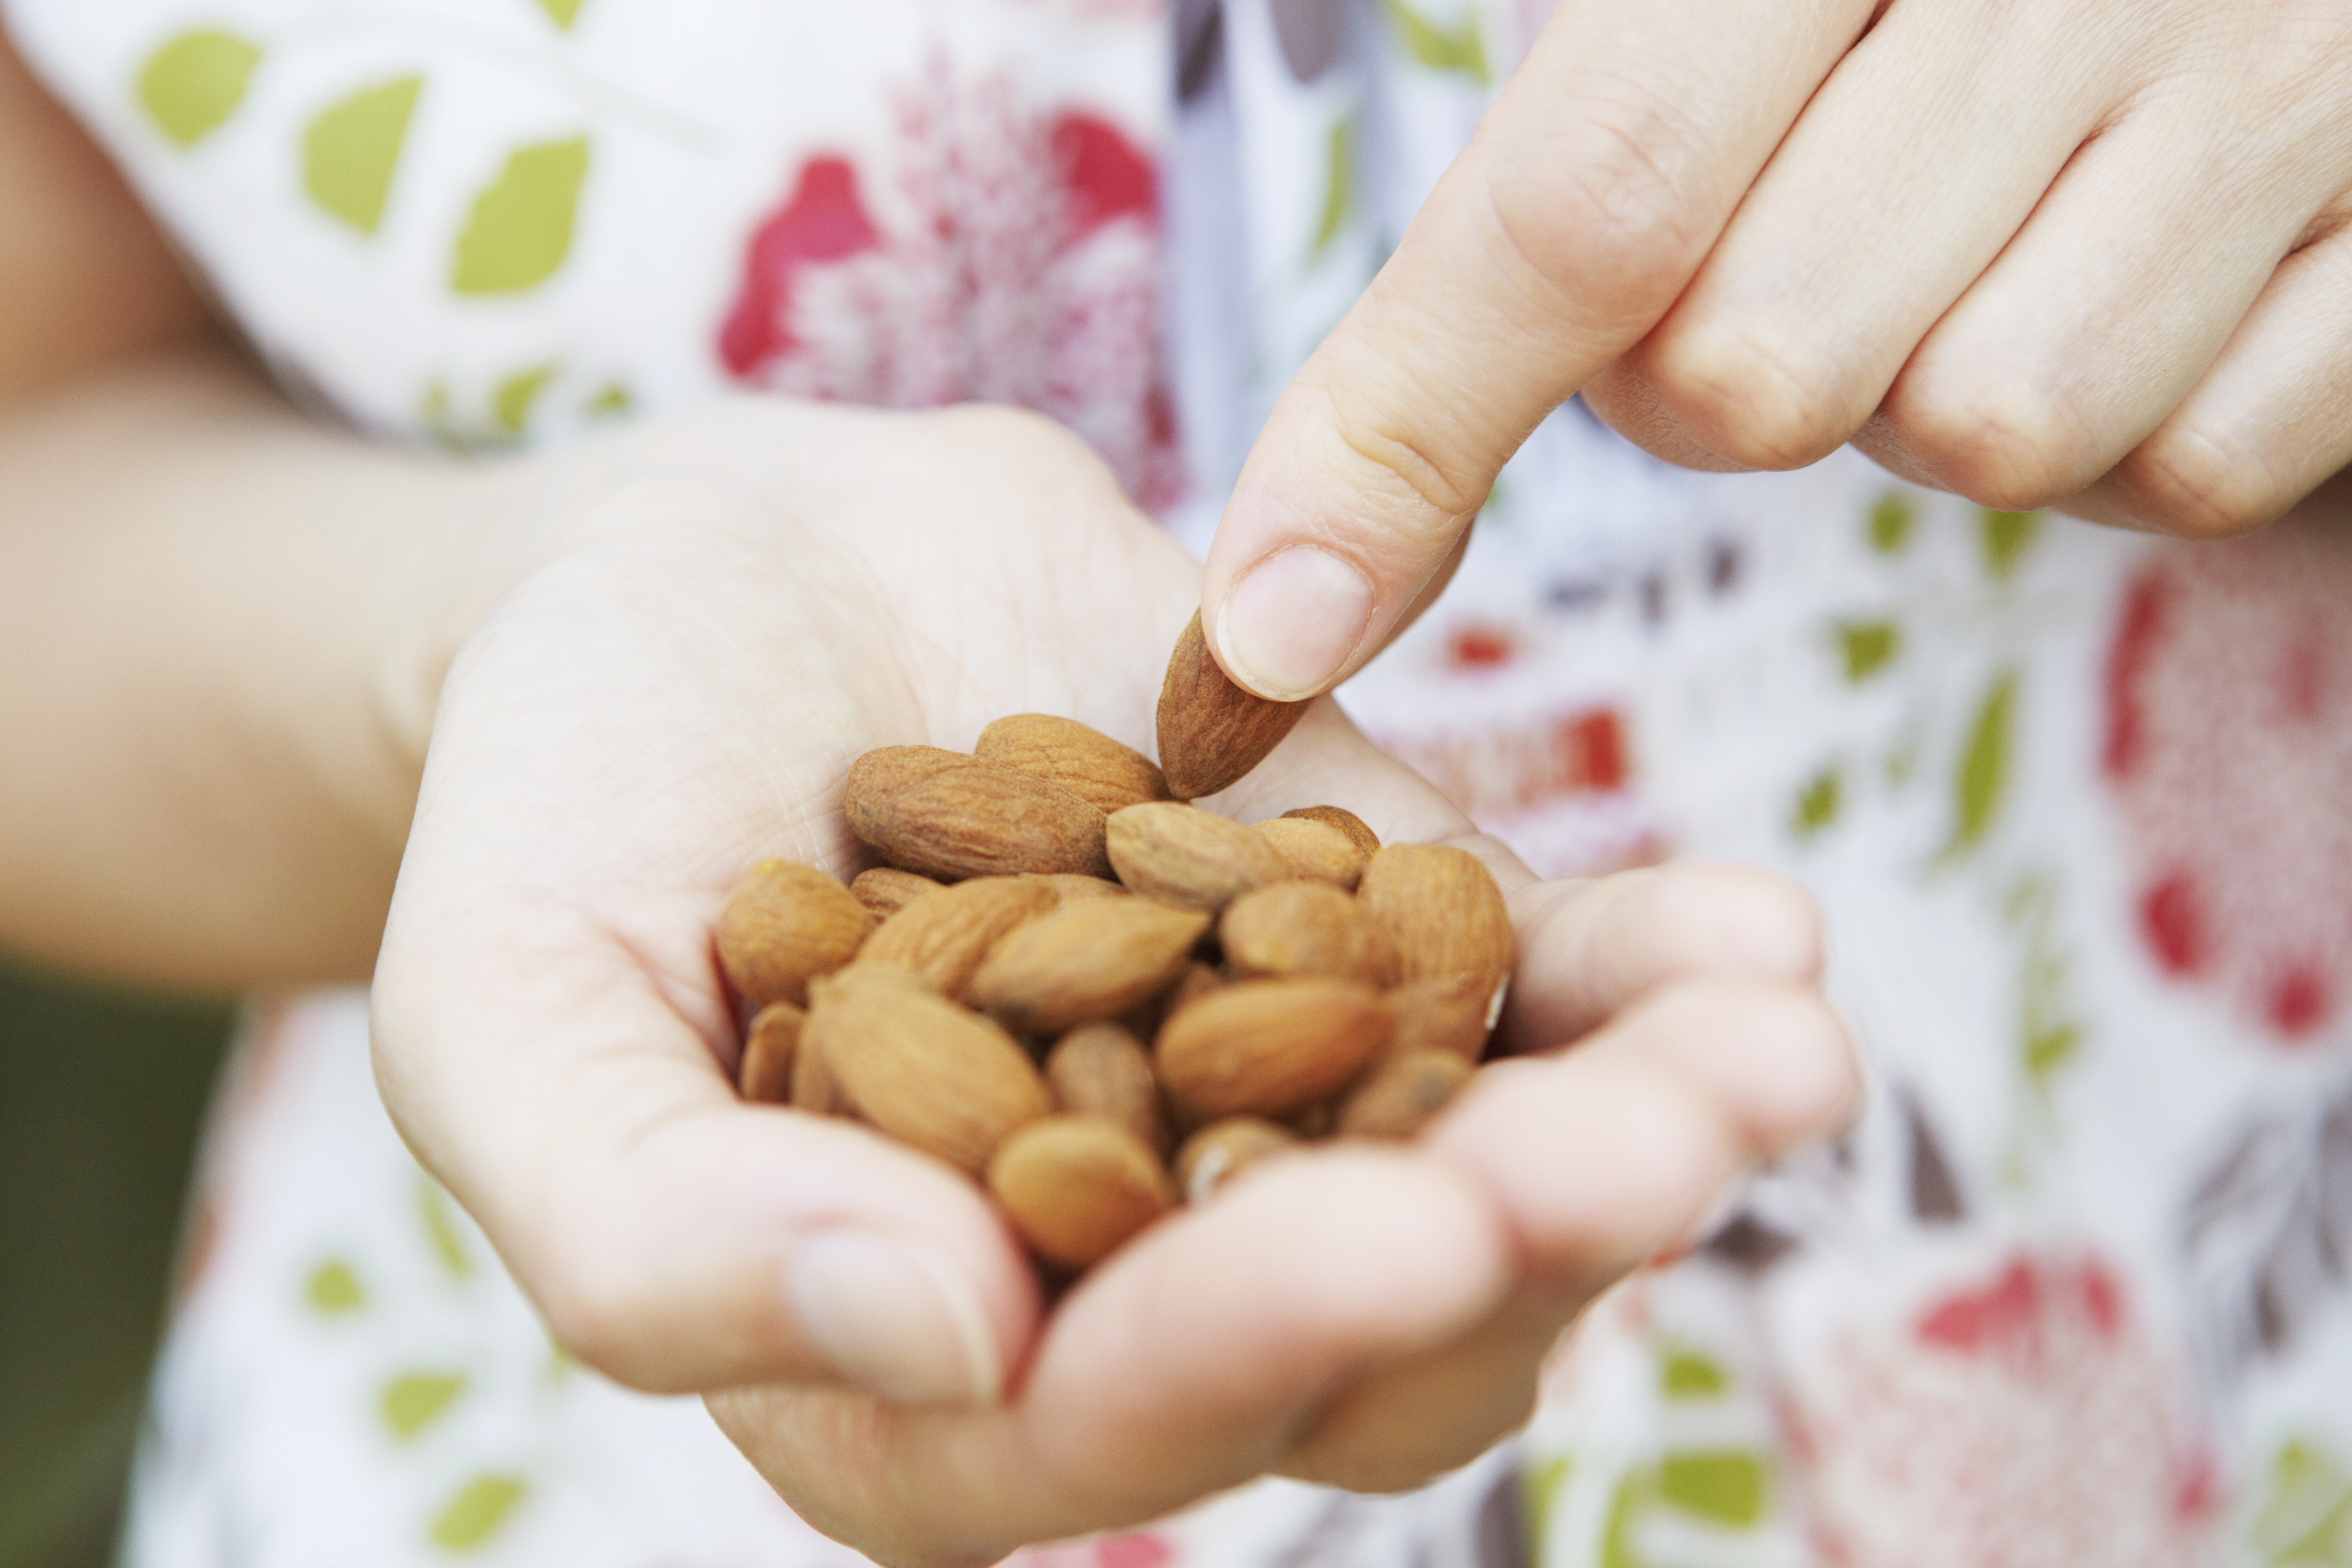 National_Nutrition_Month_Almonds.jpg